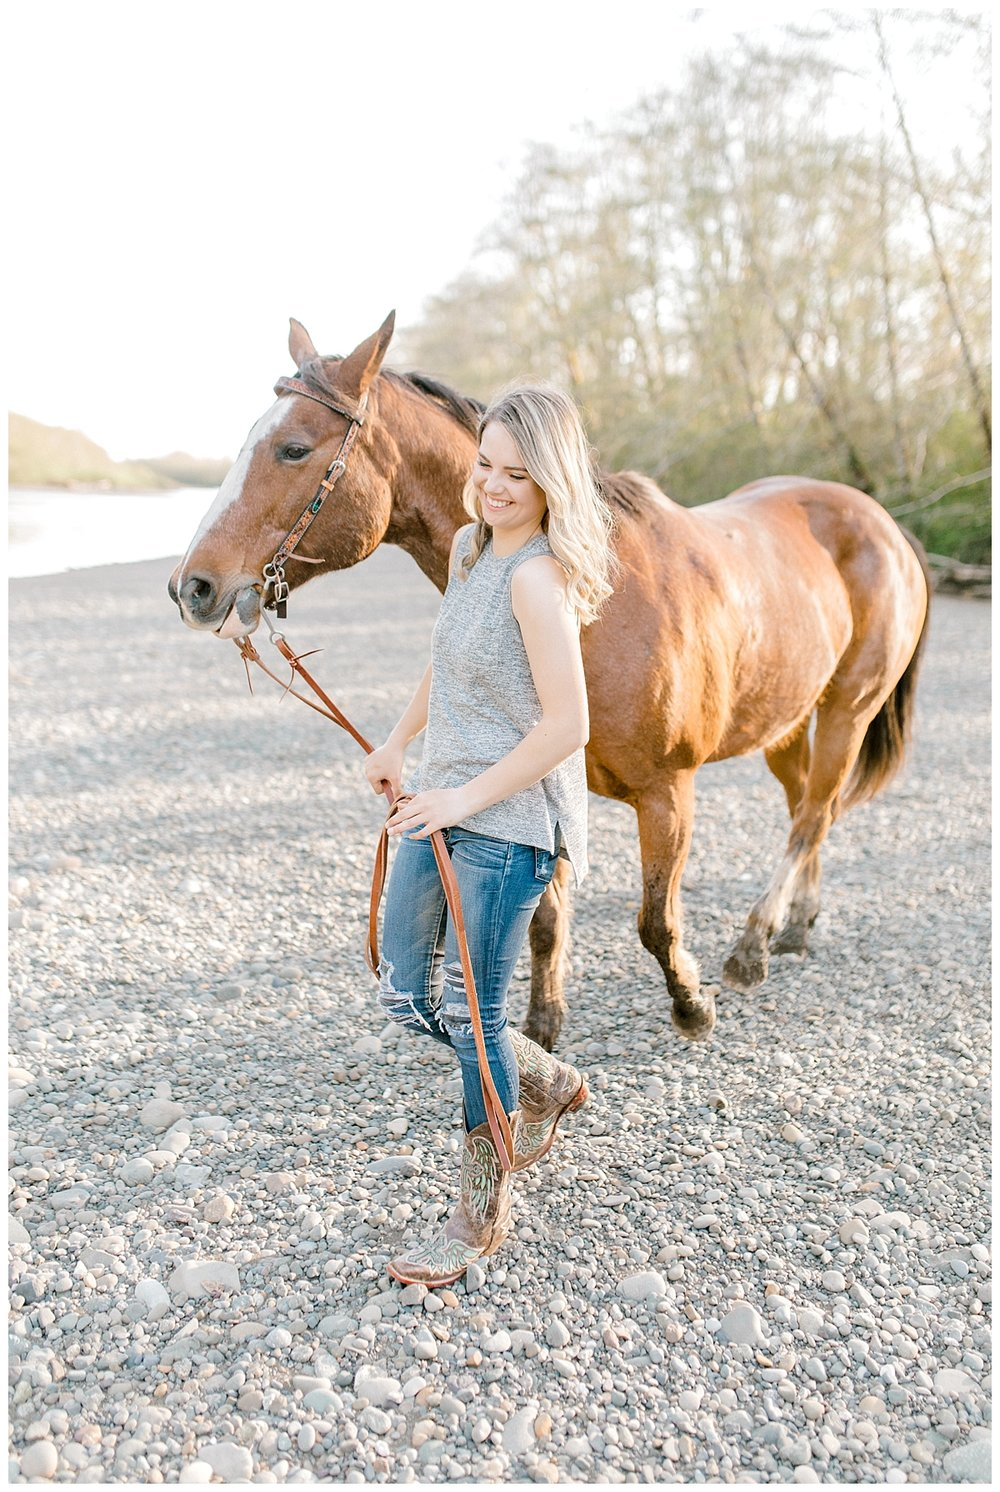 Sunset Senior Session with Horse | Senior Session Inspiration Session | Horse Photo Session | Pacific Northwest Light and Airy Wedding and Portrait Photographer | Emma Rose Company | Kindred Presets Walking with Horse.jpg